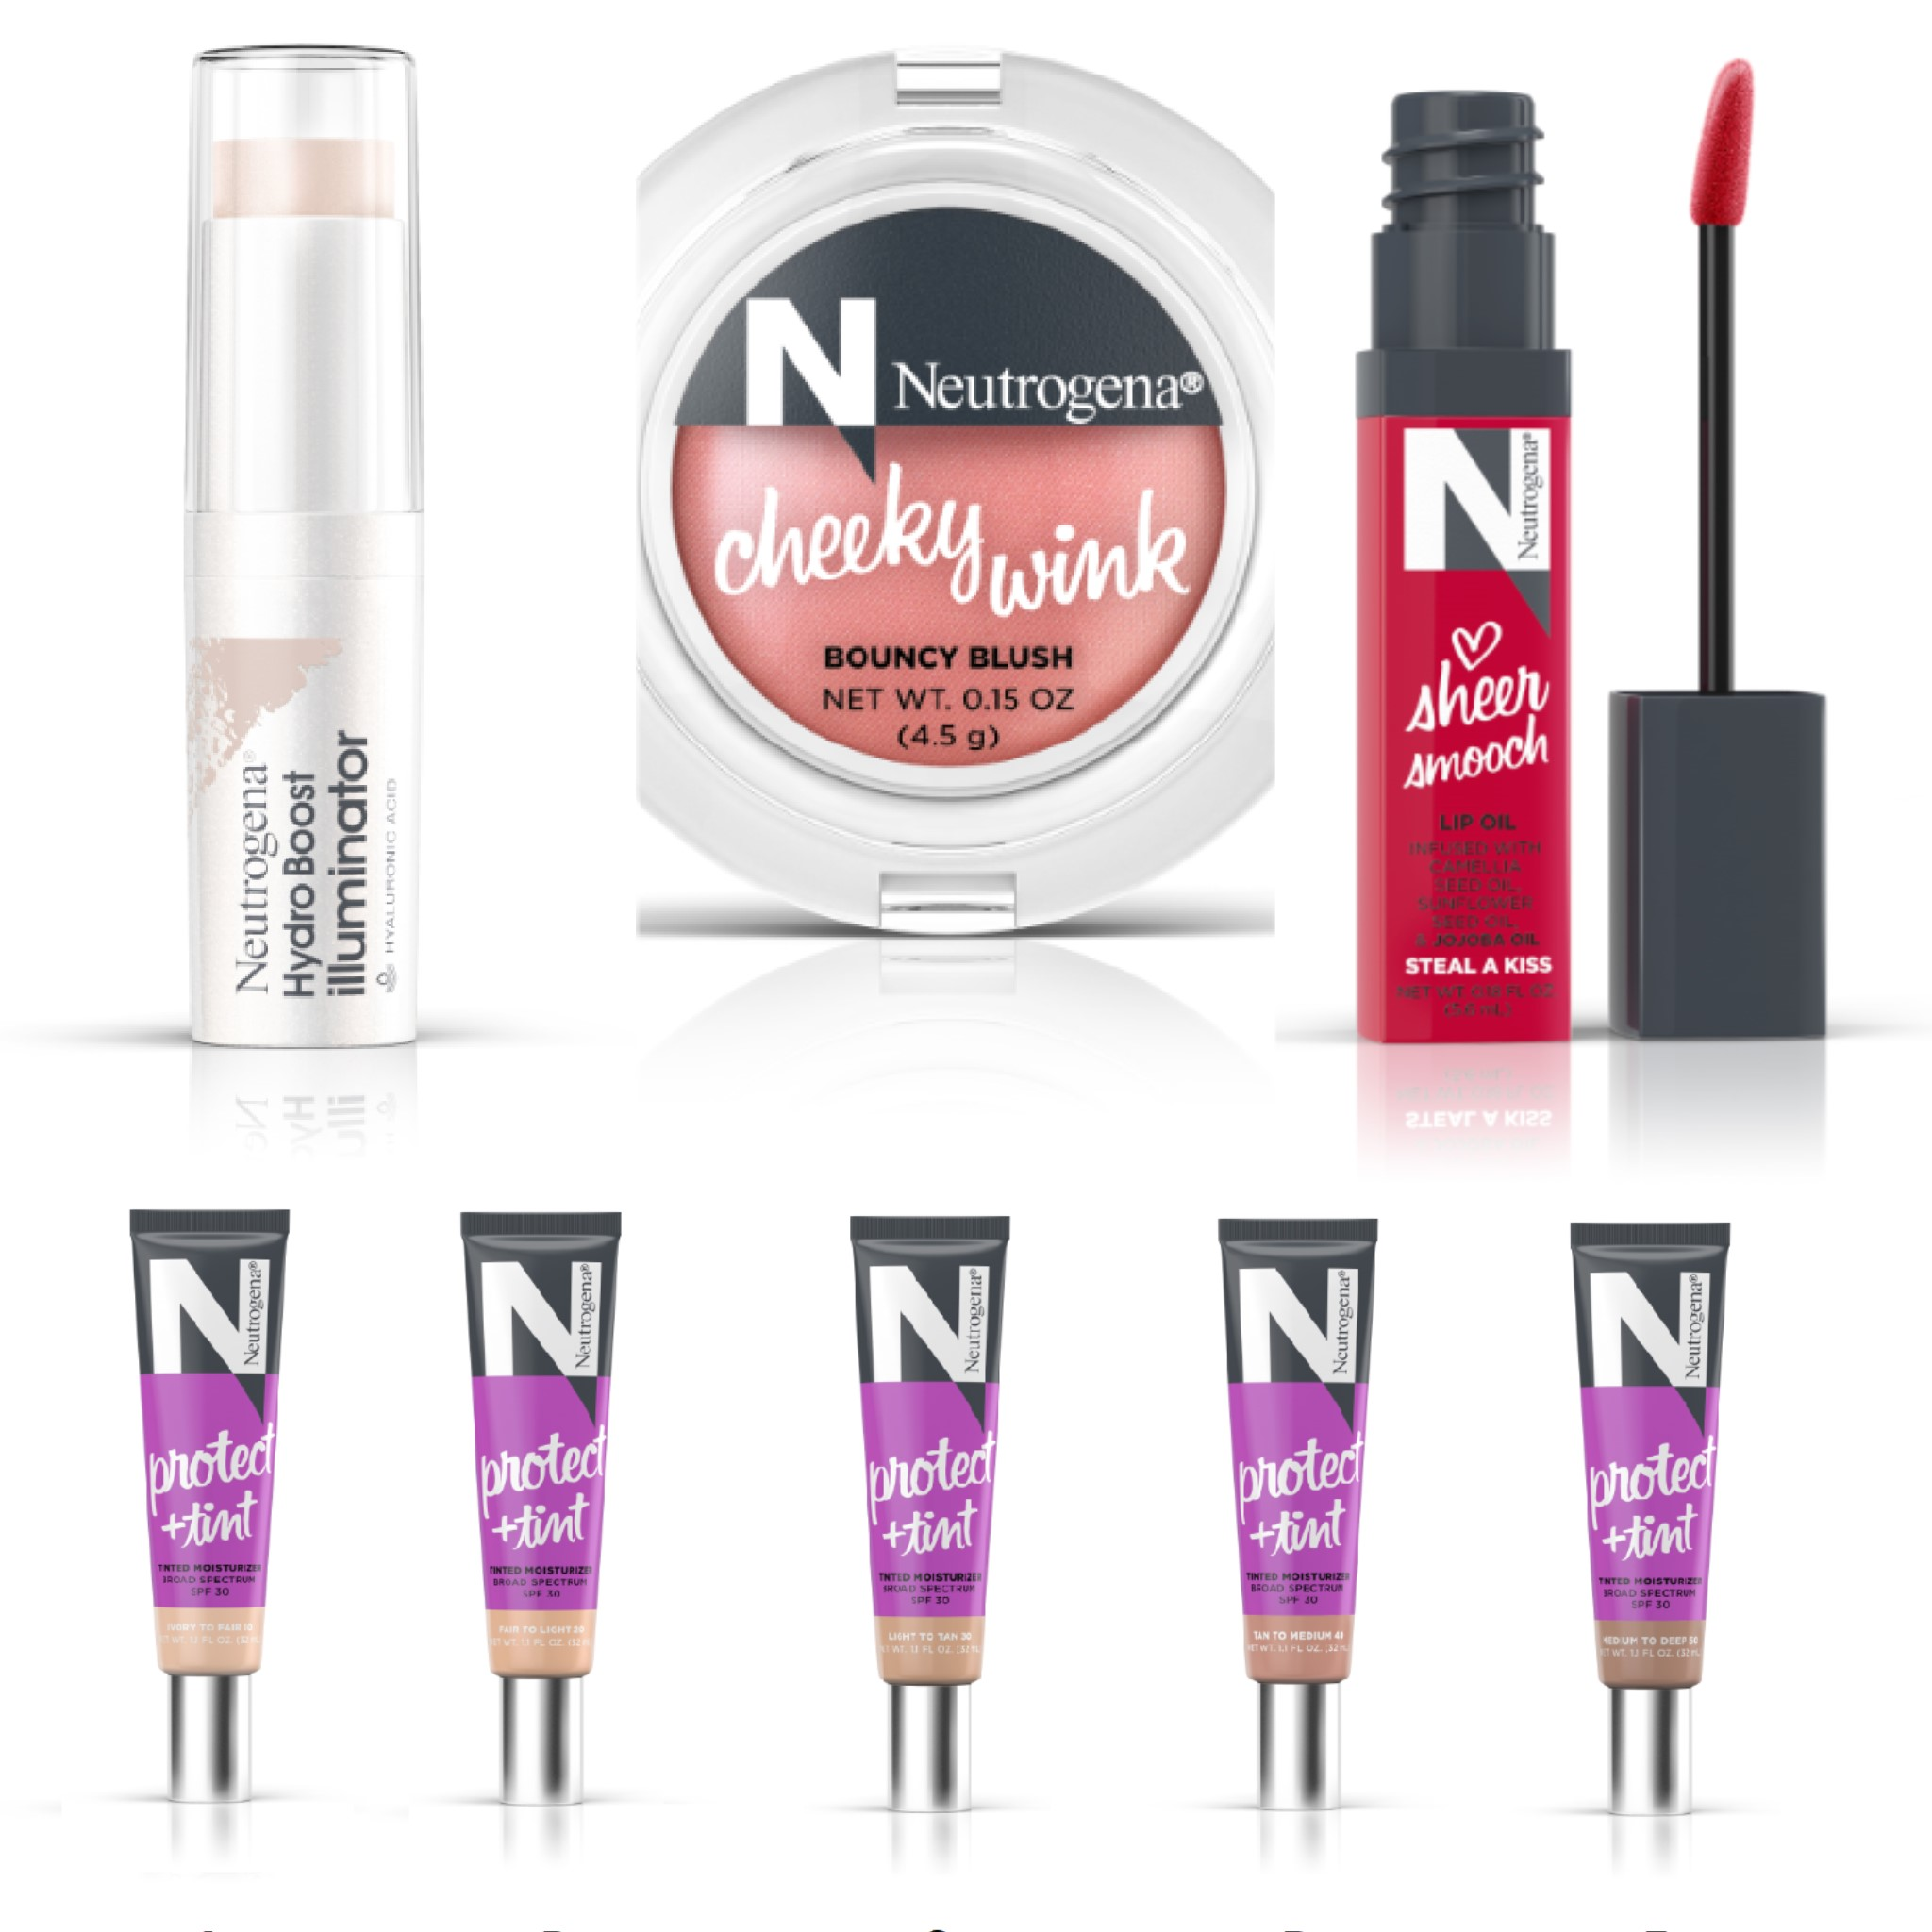 Here is an offer where you can apply to try SEVERAL new Neutrogena make up products from Home Tester Club in exchange for your honest review.